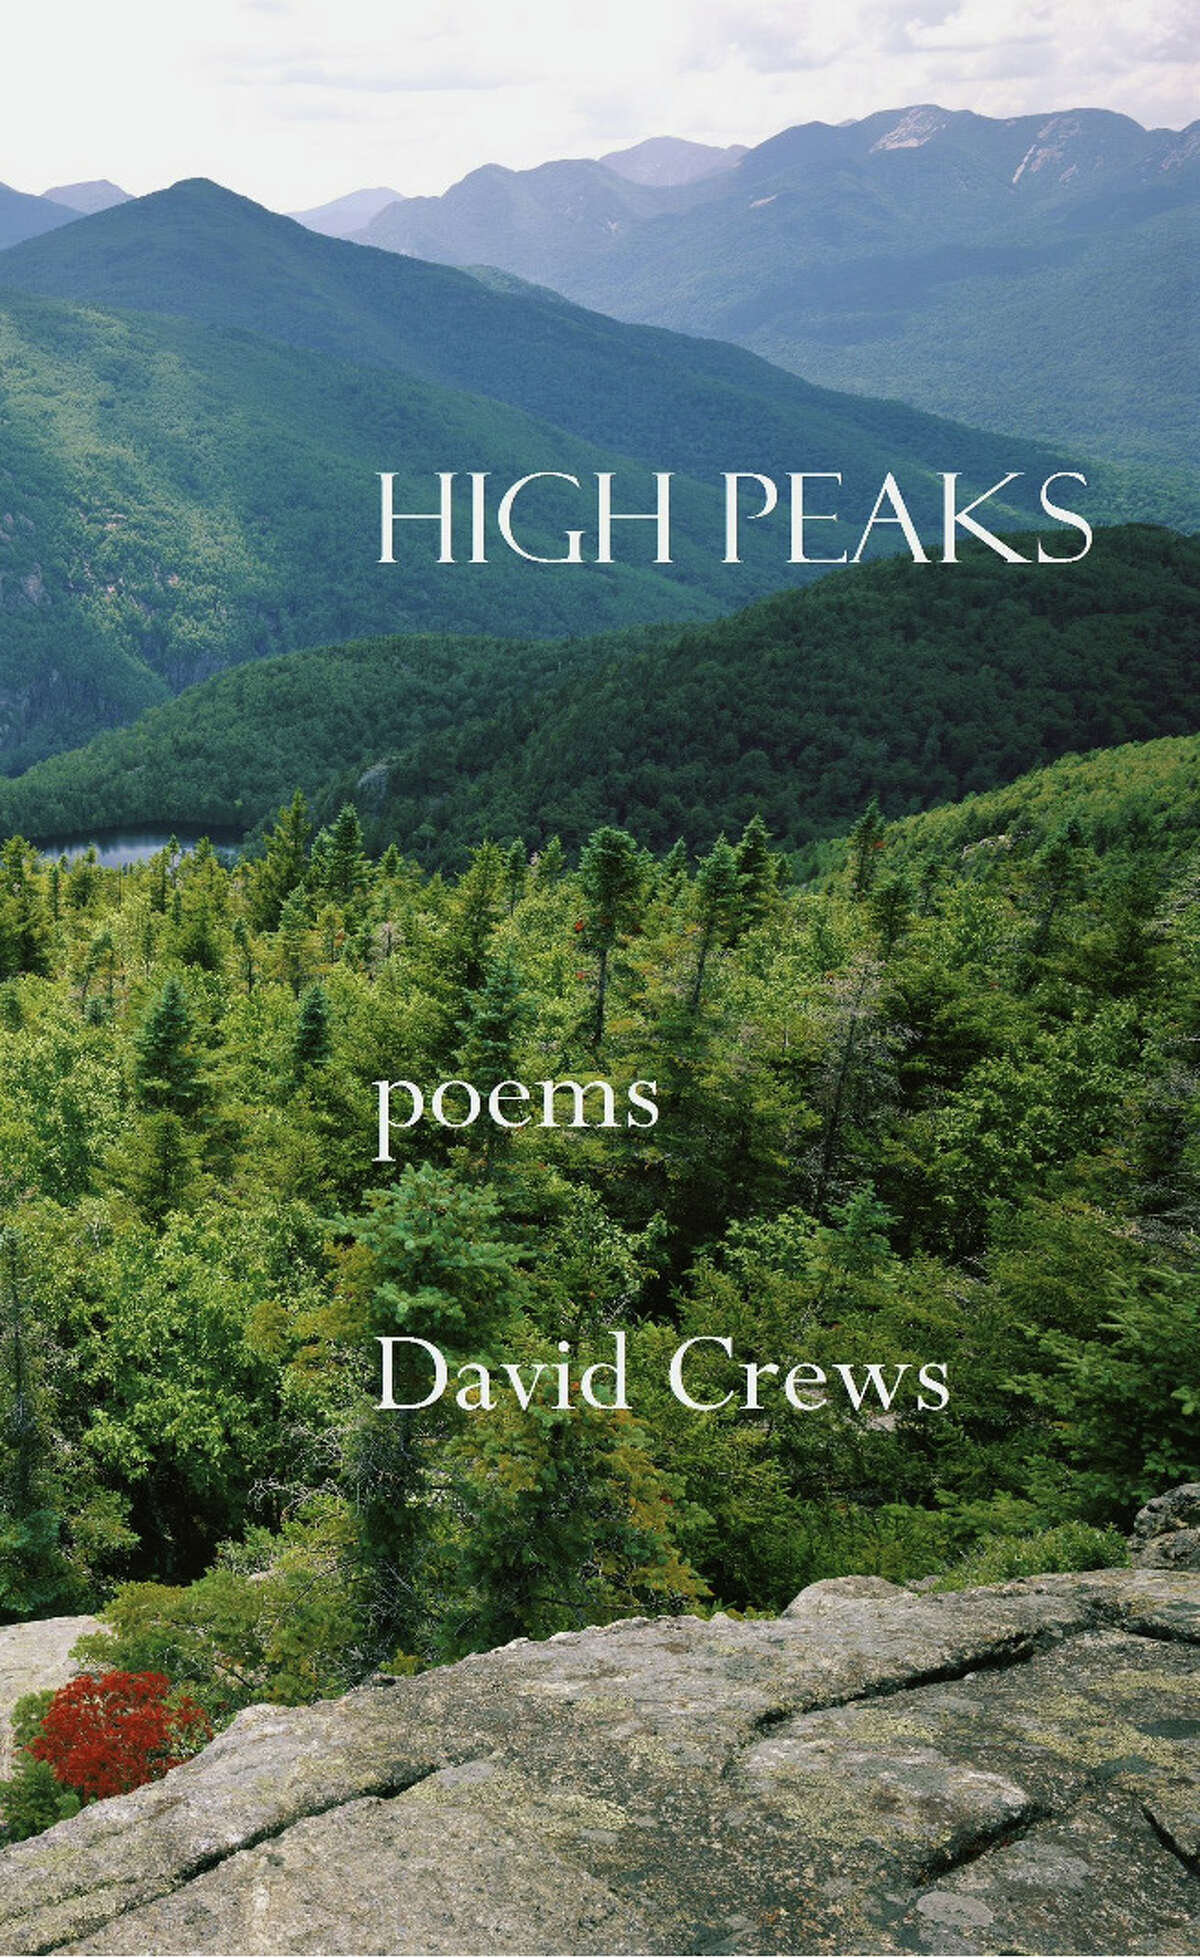 """Cover art for """"High Peaks,"""" a book of poems about the Adirondacks by David Crews."""